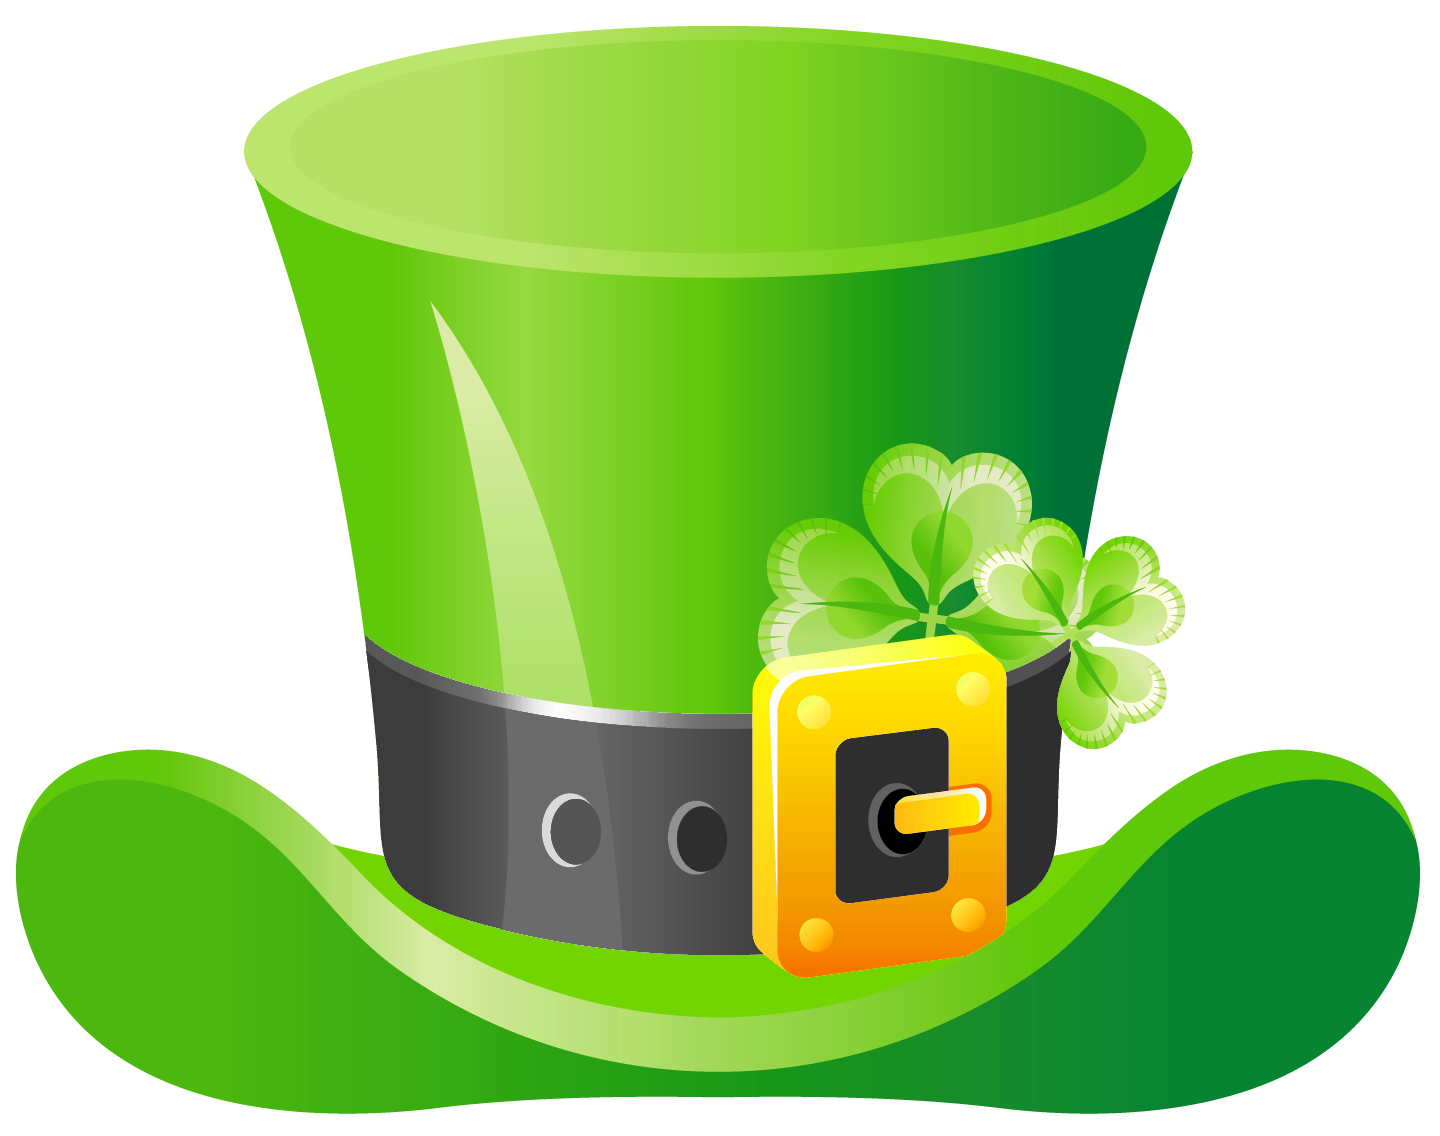 Free St Patricks Day Clipart Download